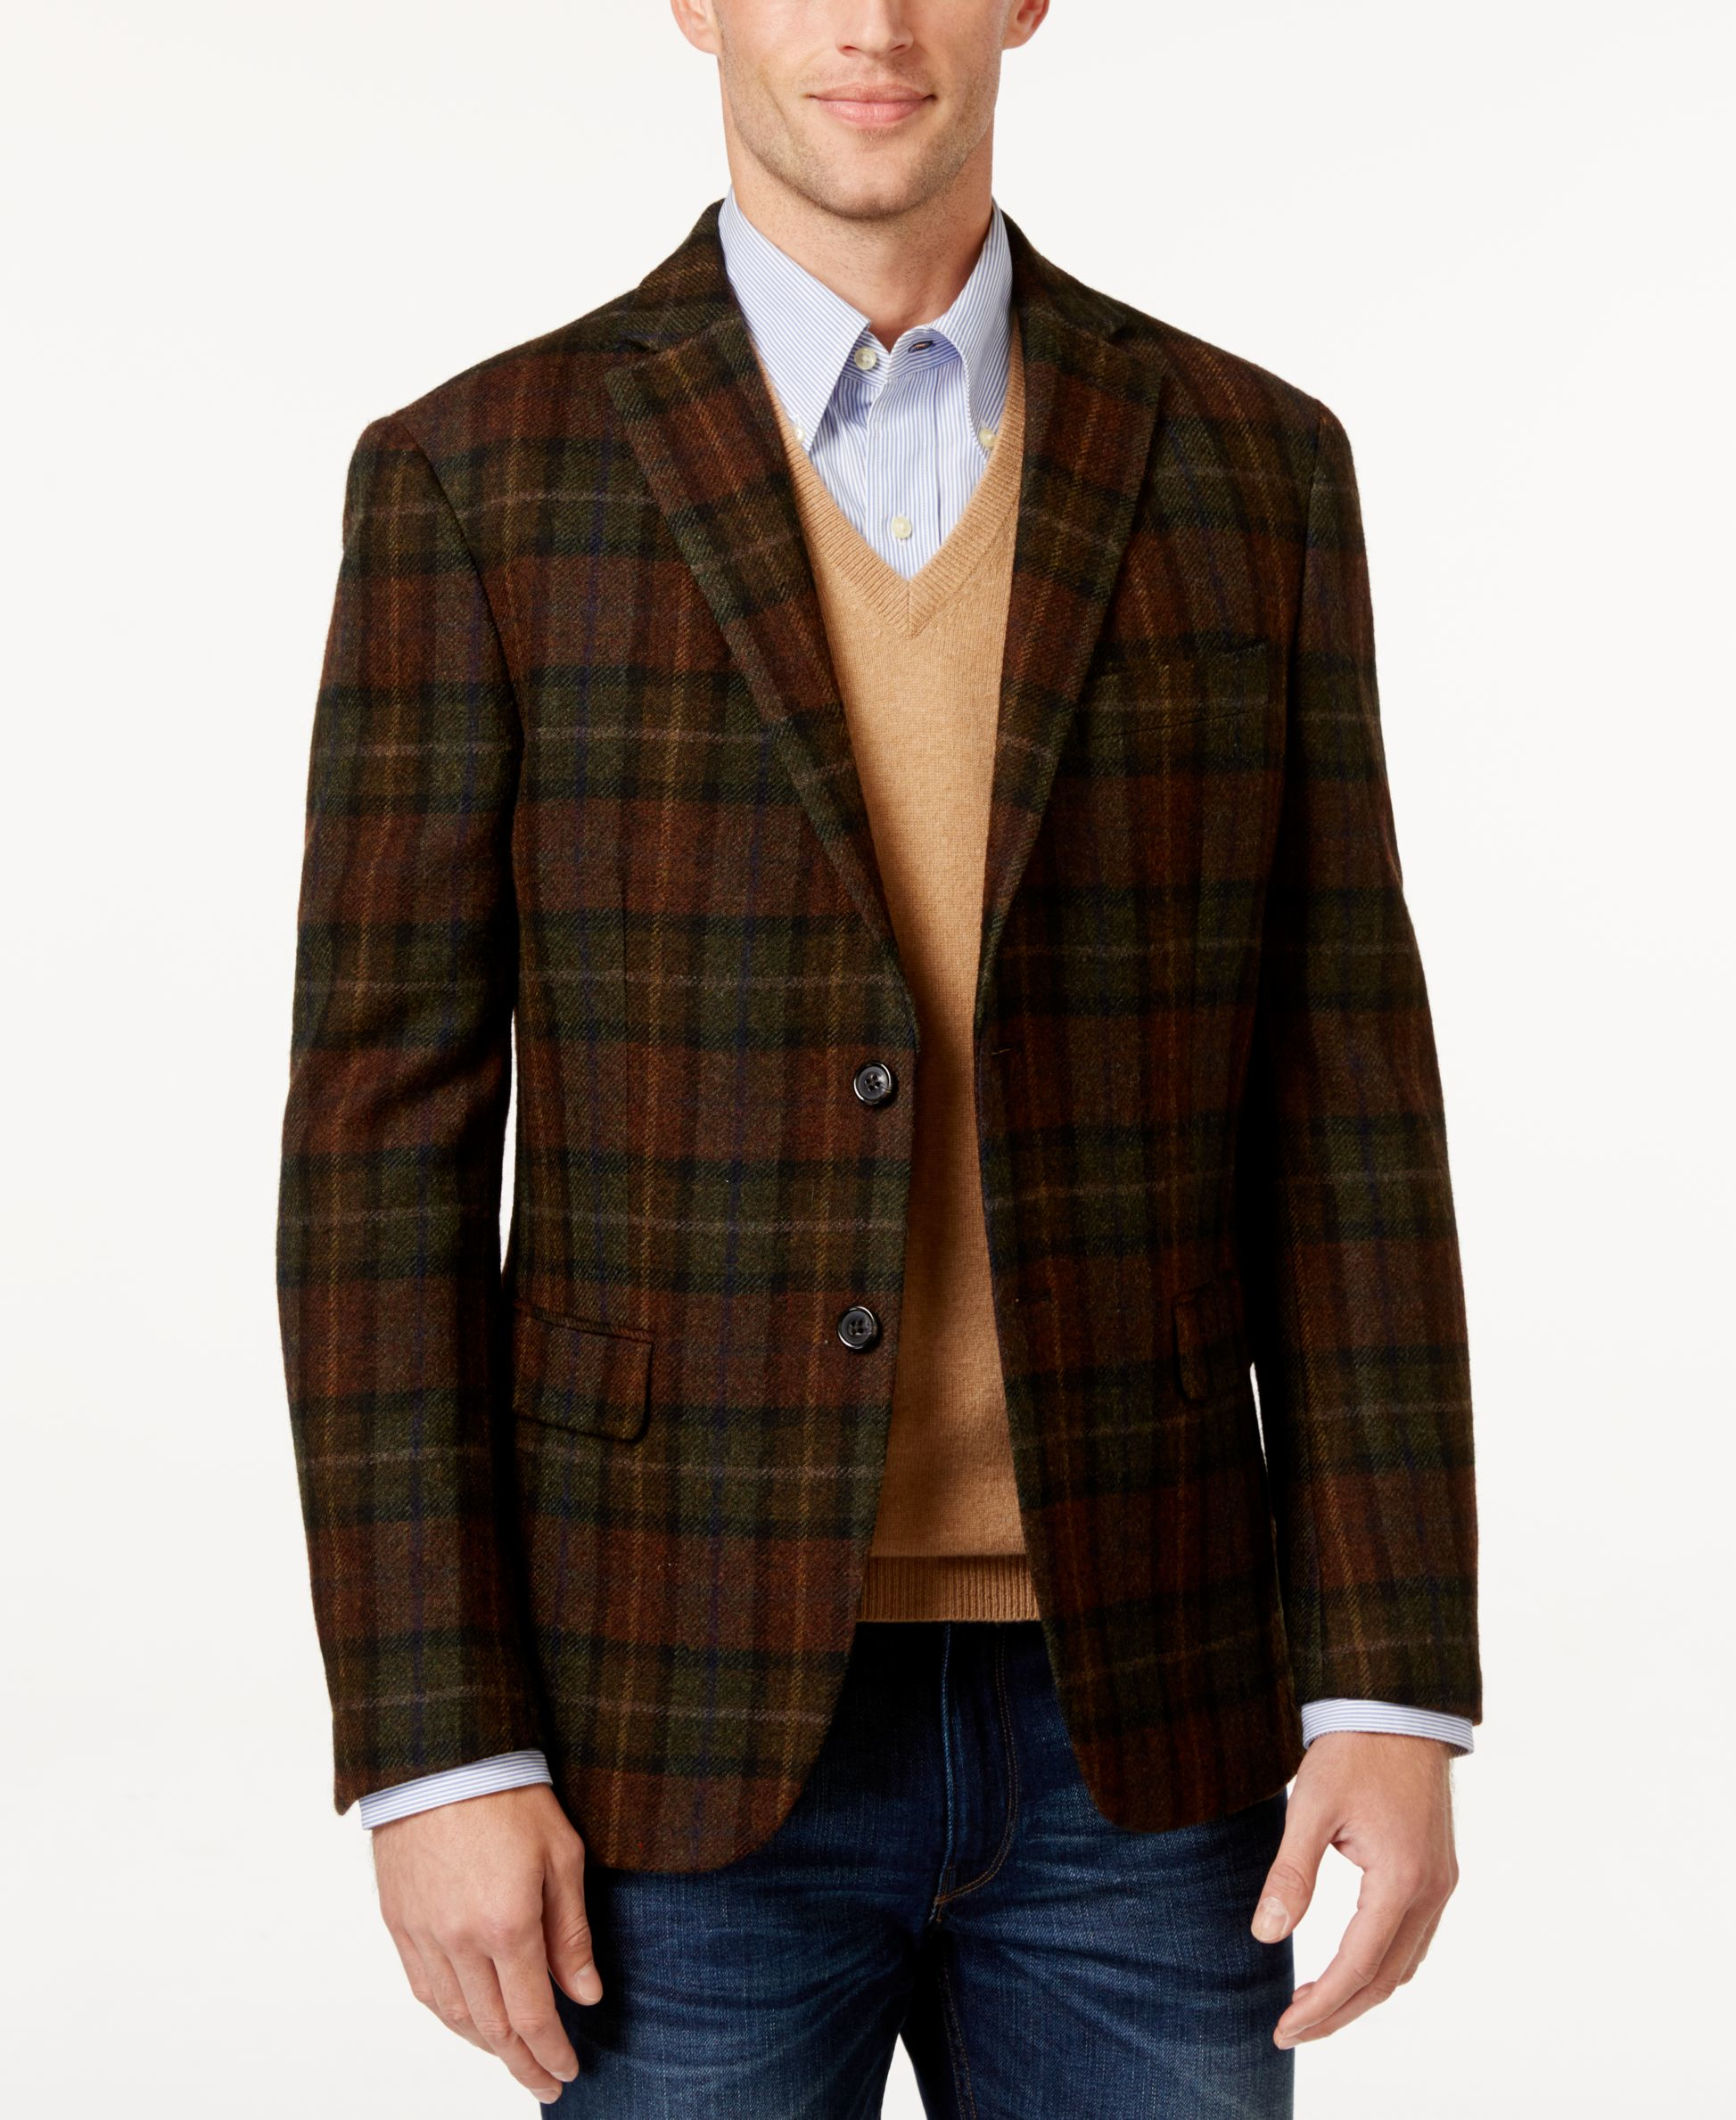 Woolrich wool vine red black plaid jacket hunting coat mens h n williams men s arel outerwear johnson men s plaid wool jackets on wanelo winter autumn woolrich mens heavy pure wool hunting coat omcgear woolrich clic hunt coat men s. Related. Trending Posts. Girls 3 In 1 Jackets.